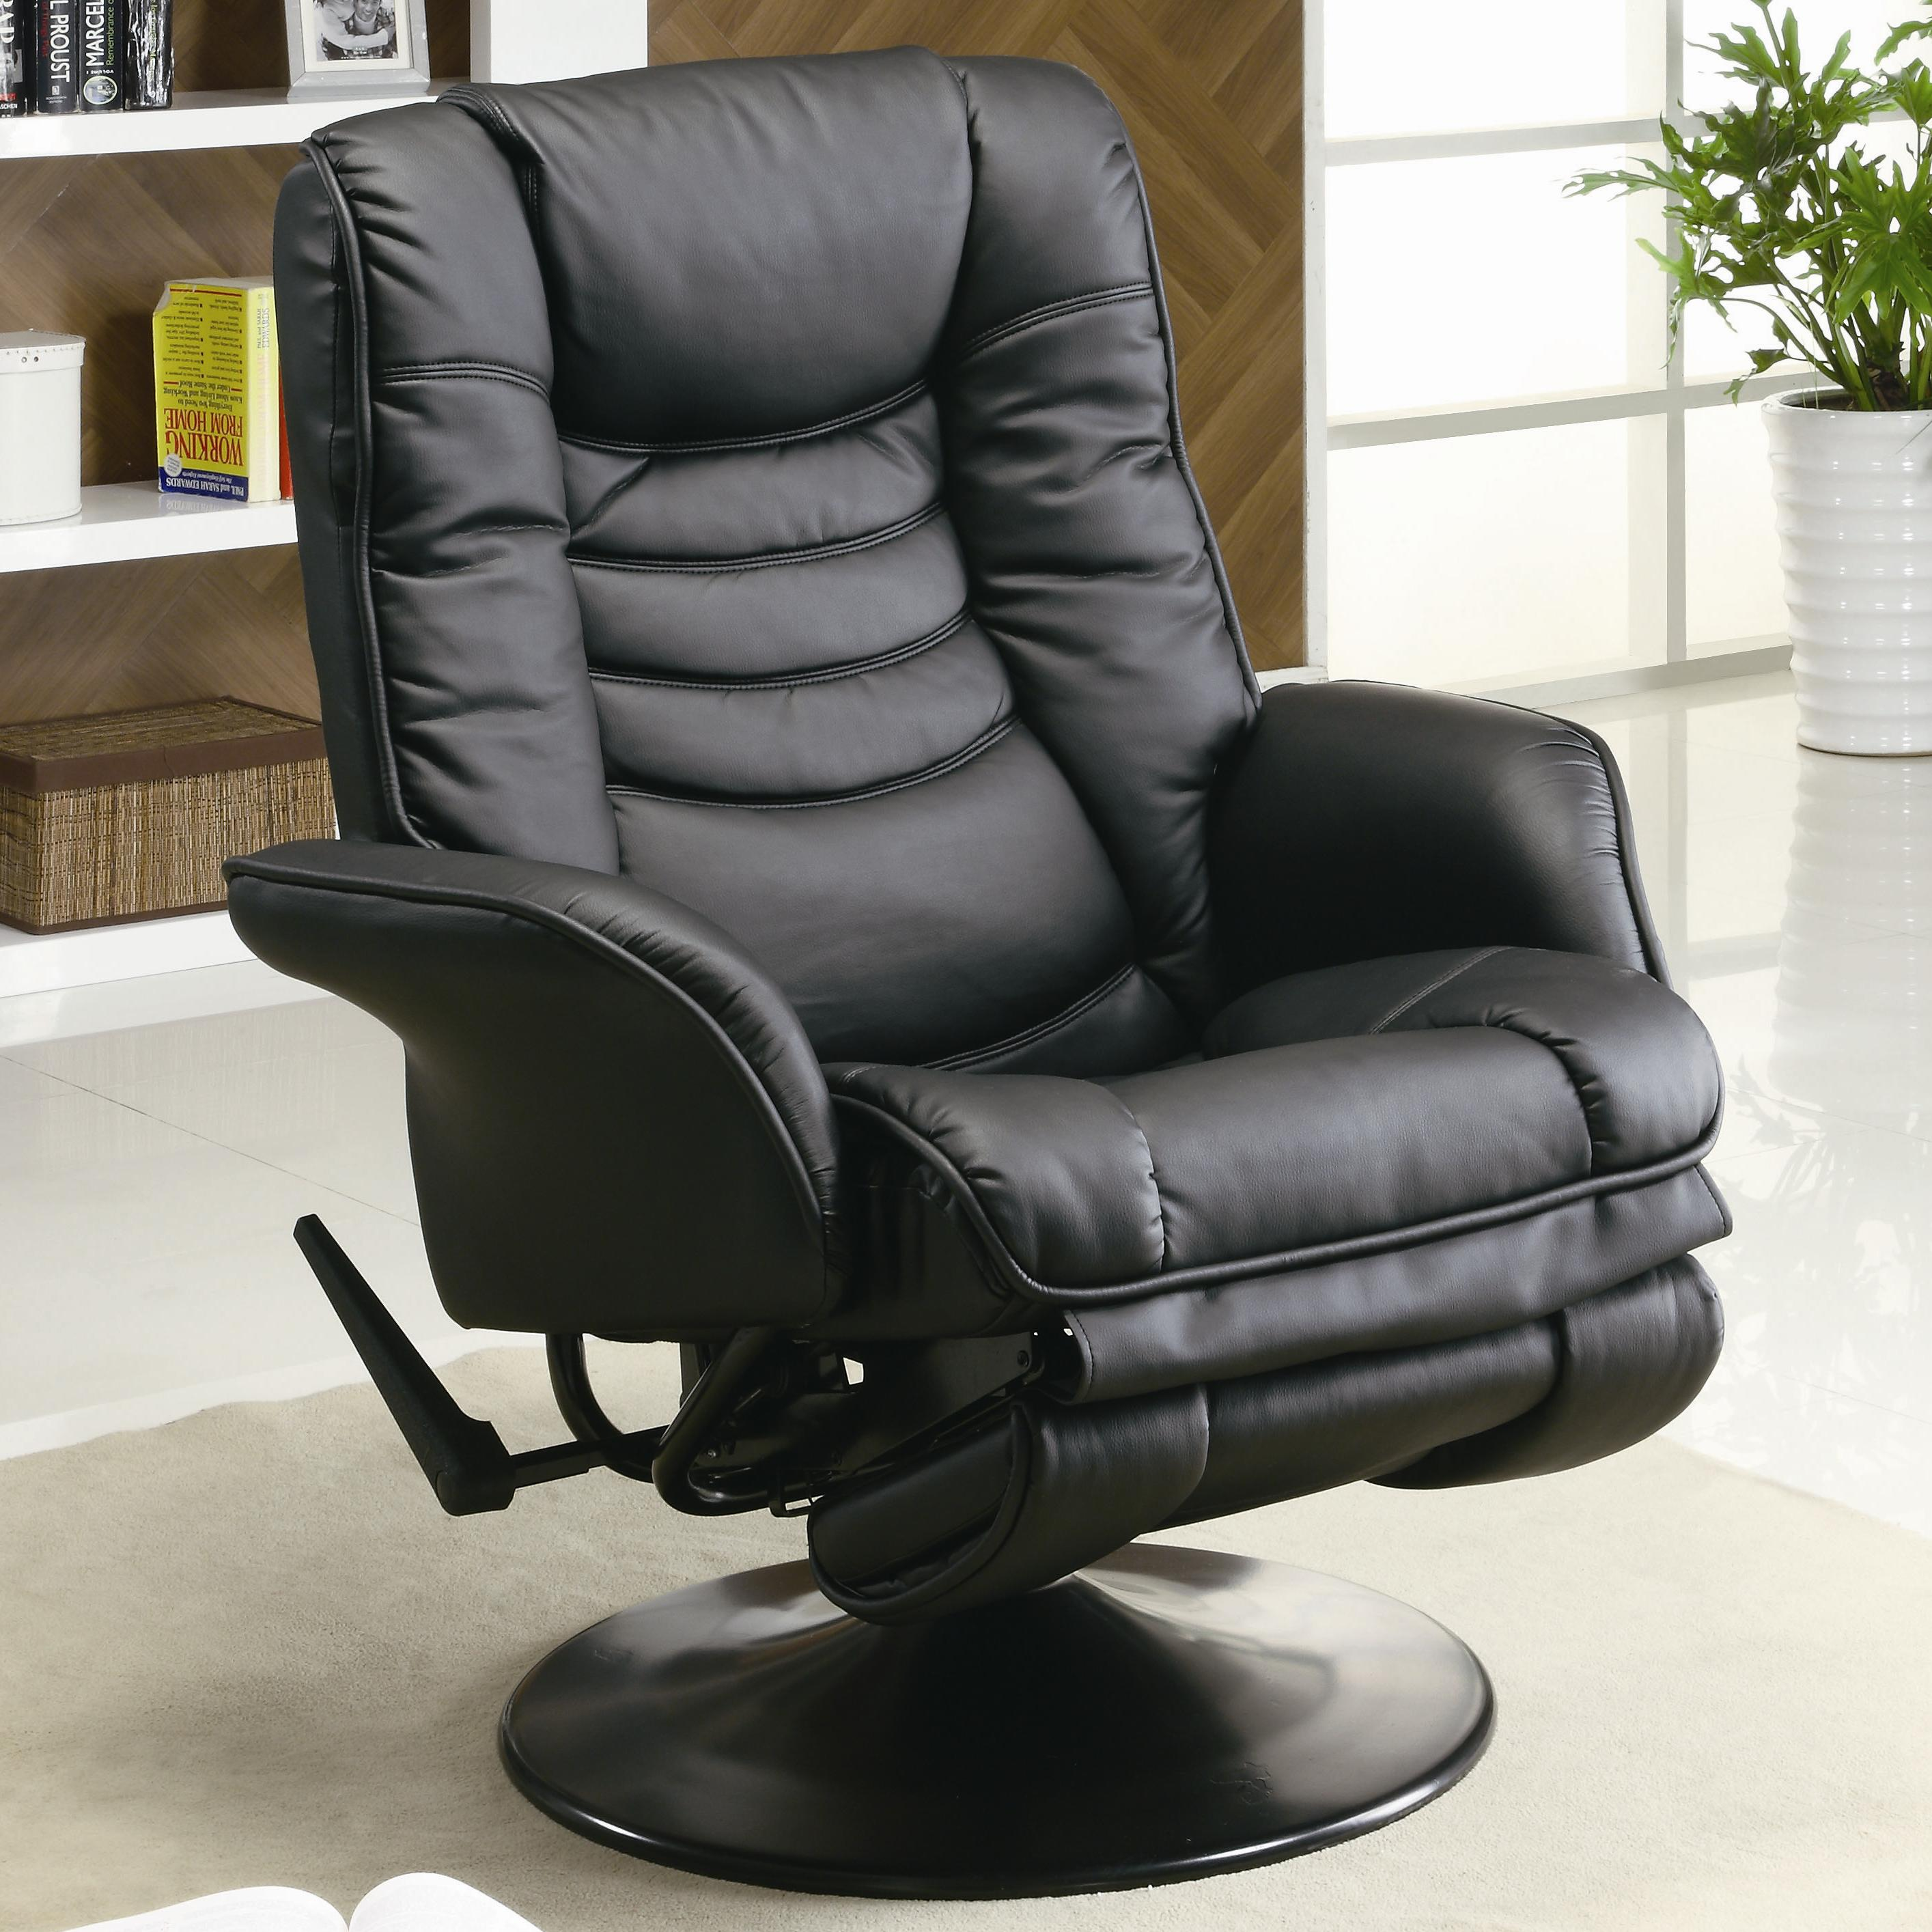 Recliners Swivel Recliner by Coaster at Value City Furniture